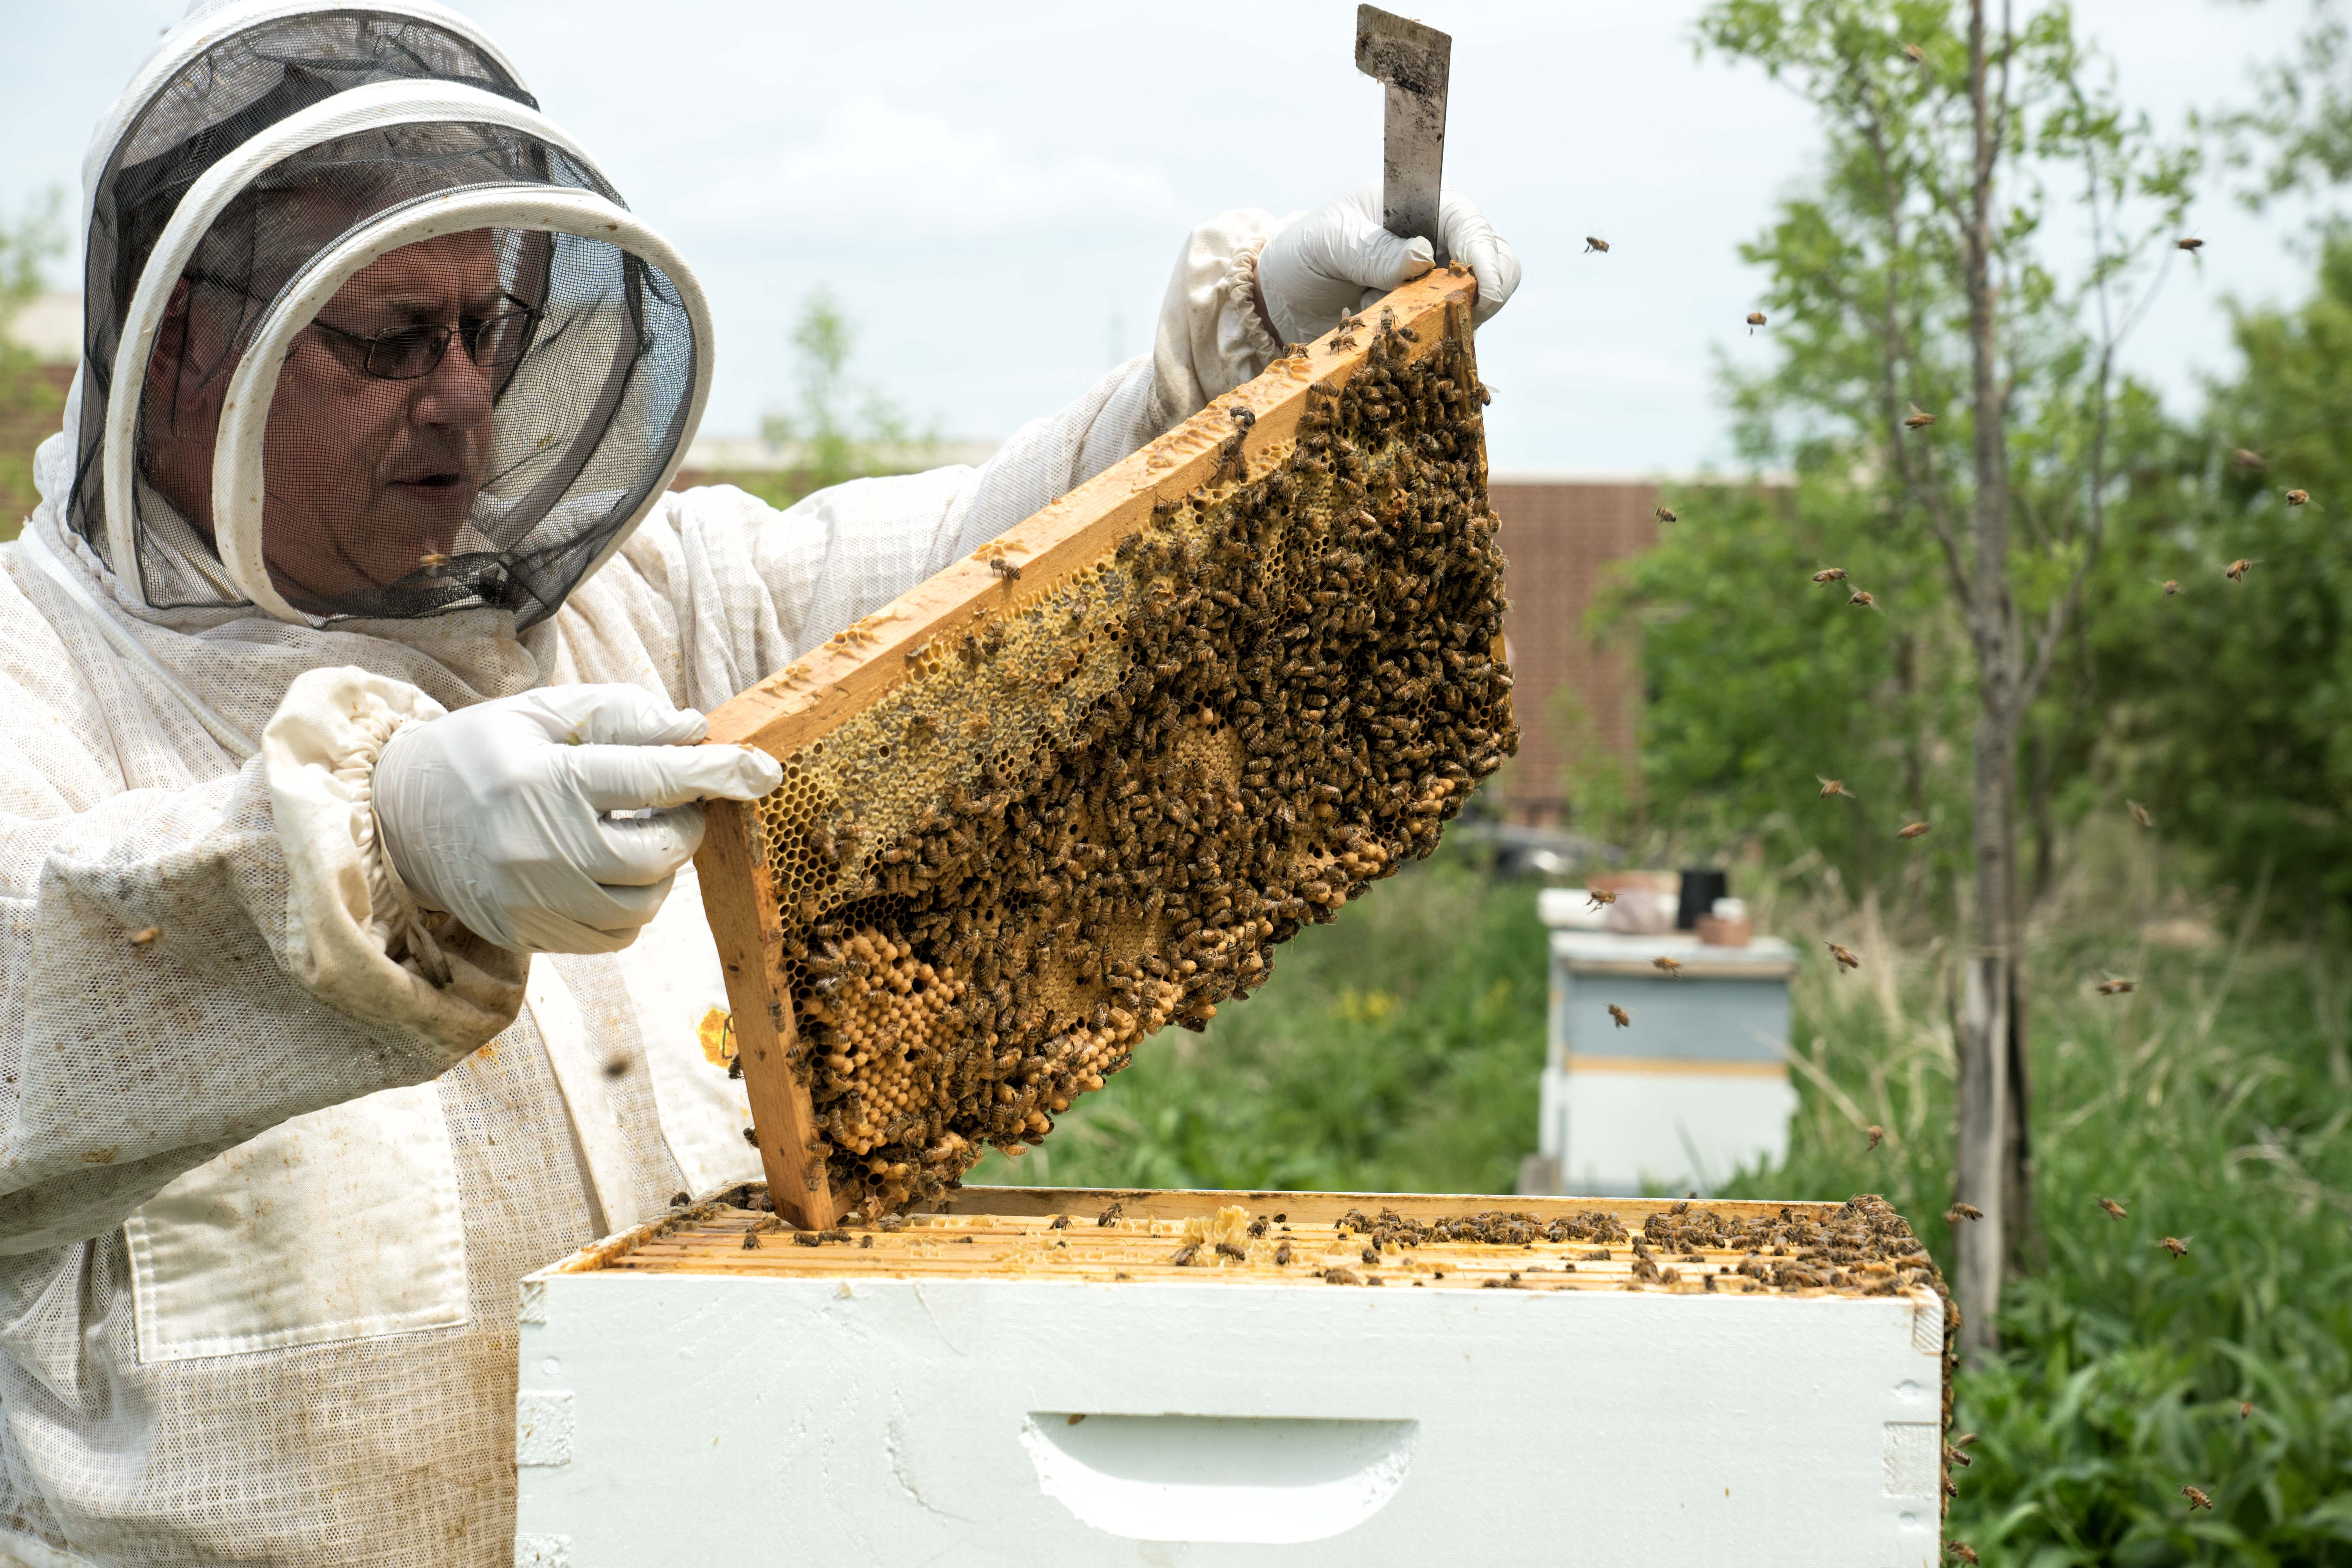 Male beekeeper opening bee container.